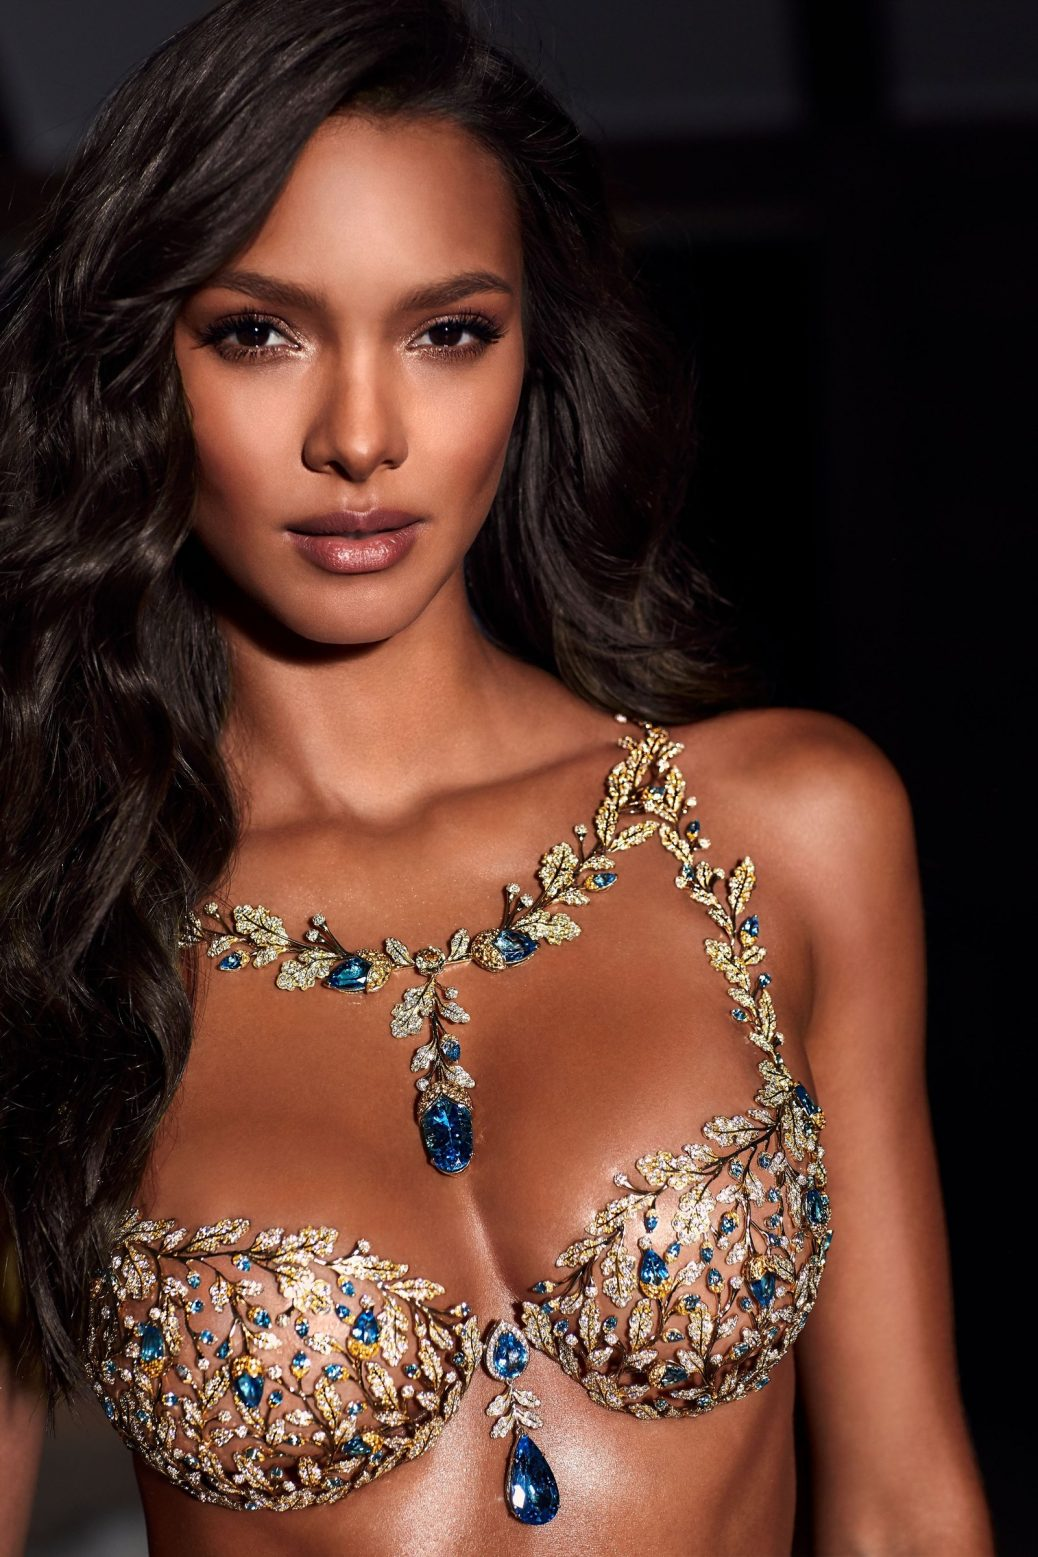 Victoria's Secret Angel Lais Ribeiro in the 2017 Champagne Nights Fantasy Bra by Mouawad